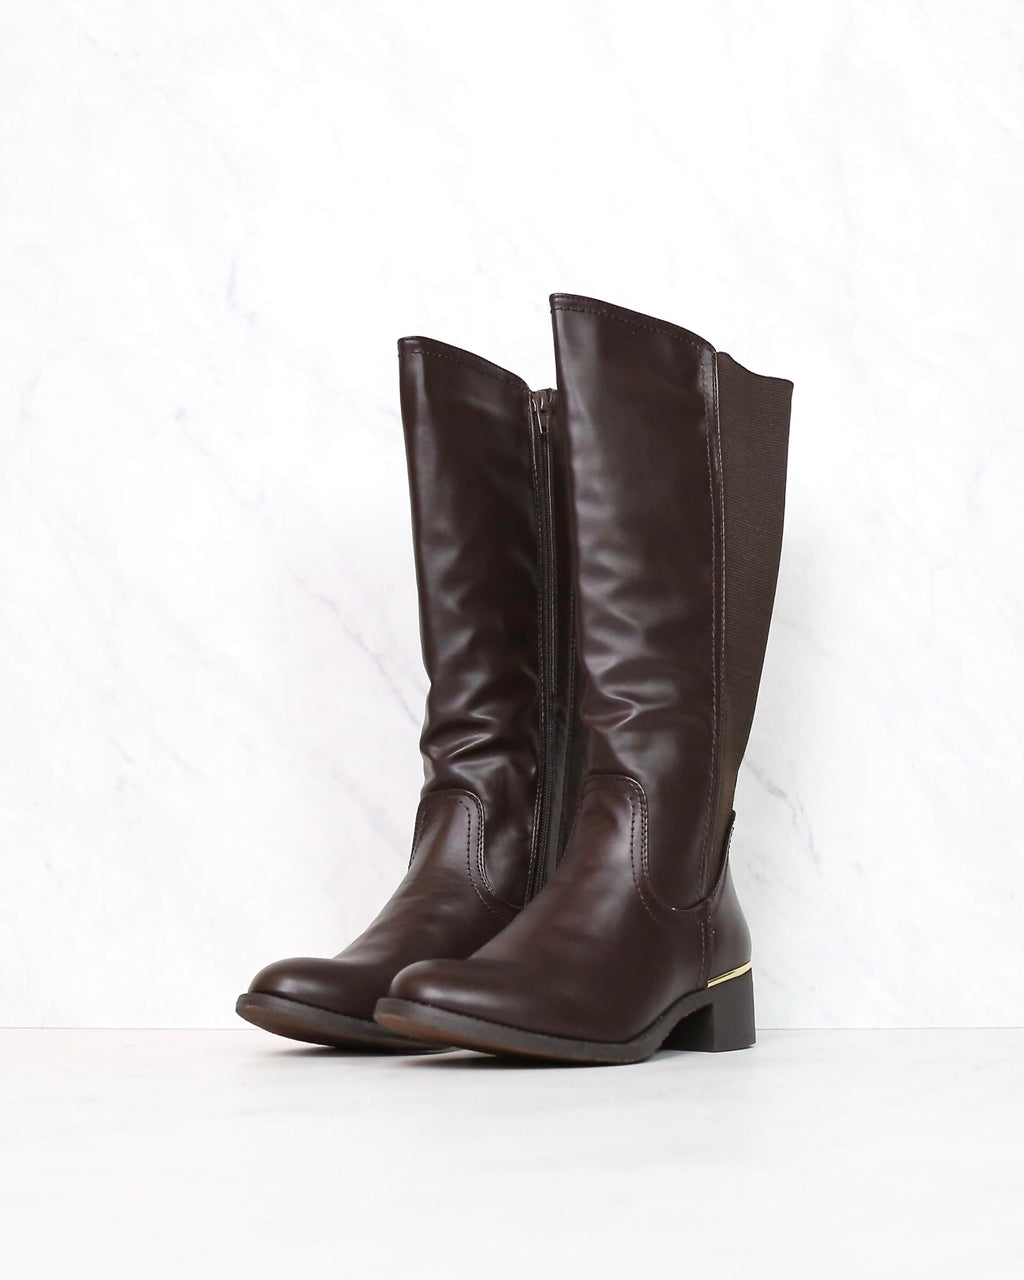 Classic Tall Riding Boots in Brown